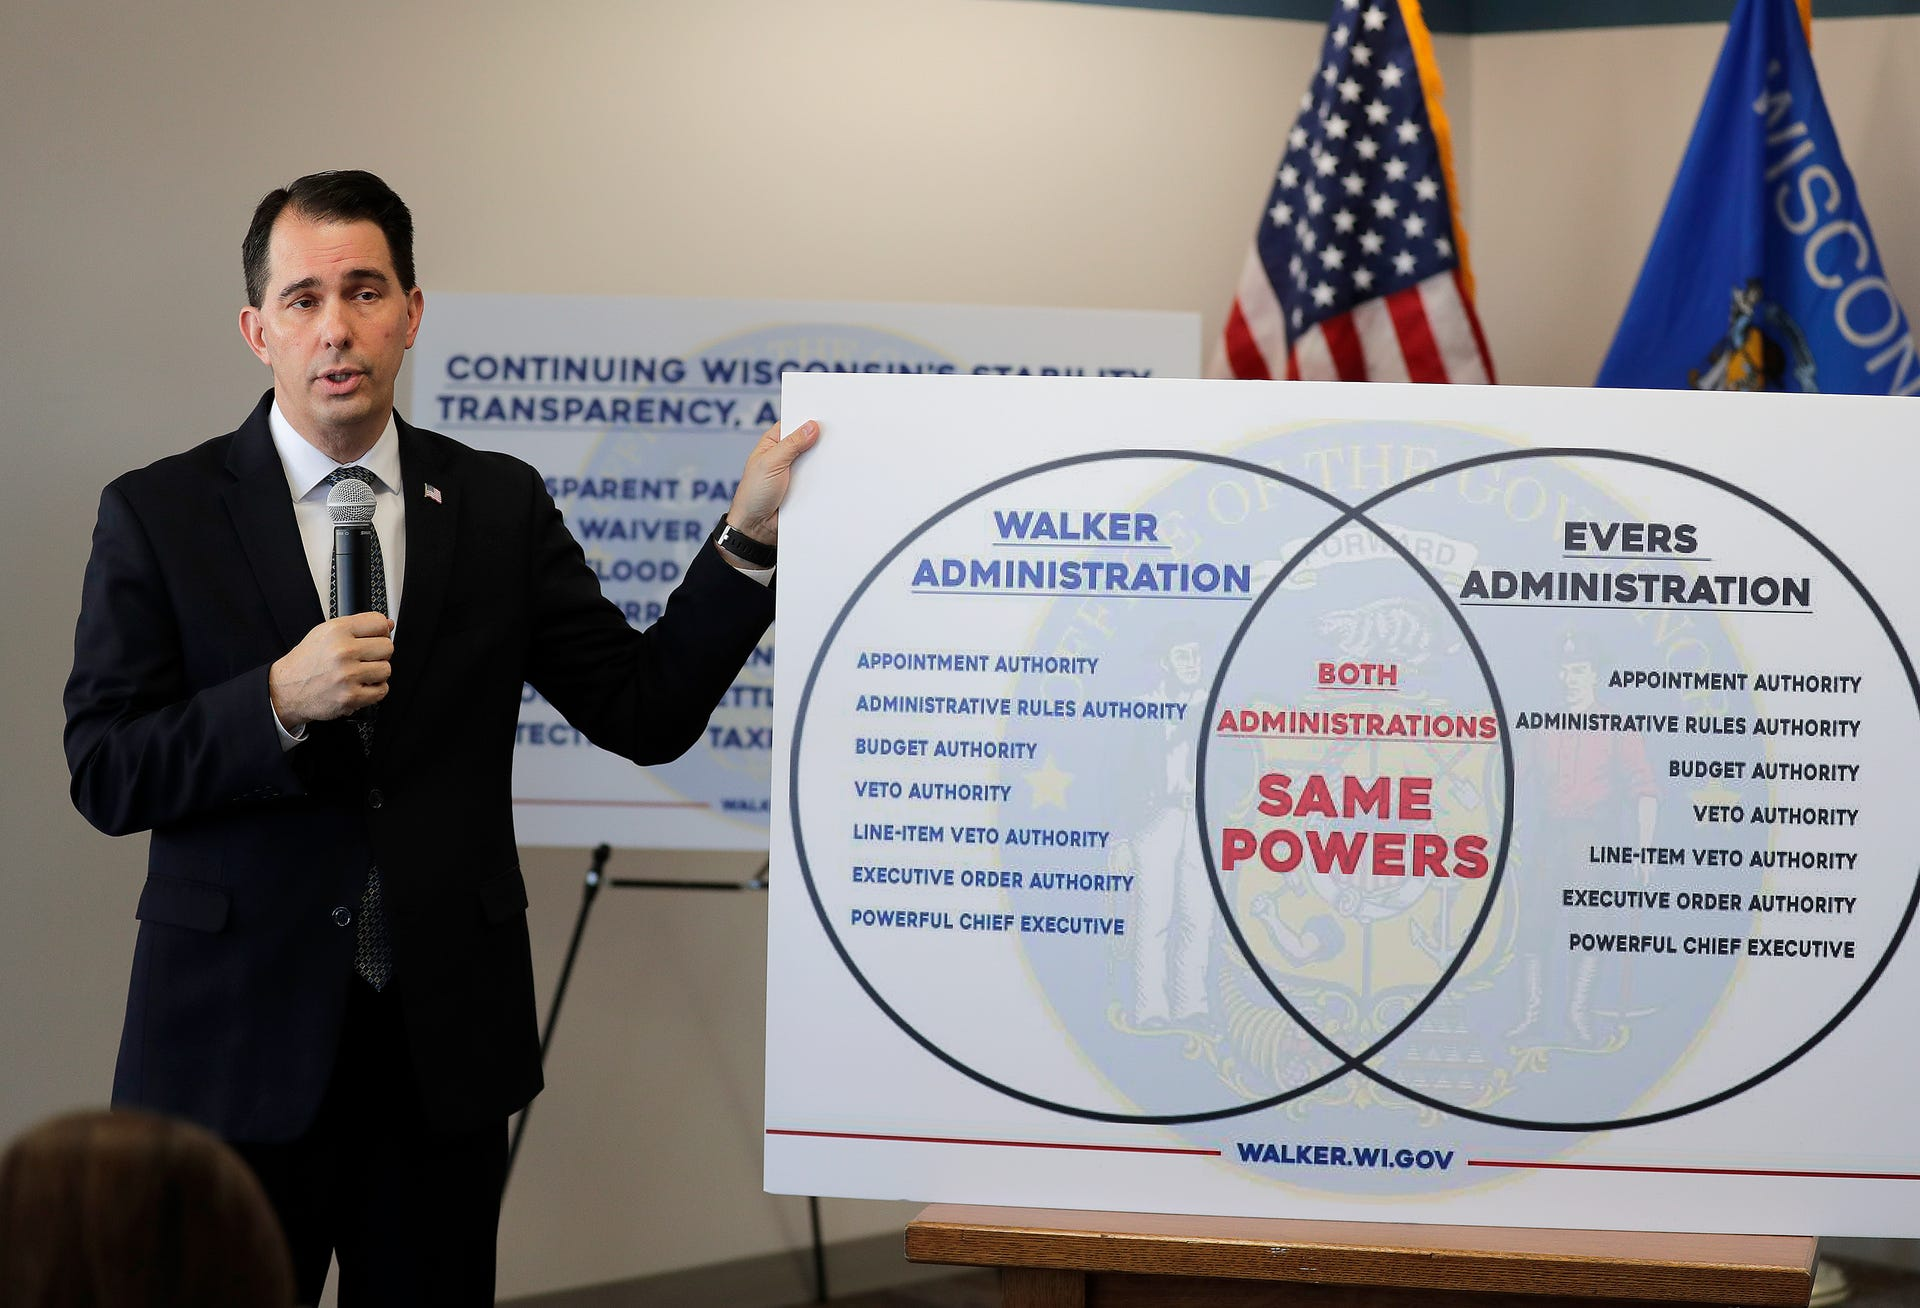 Wisconsin Gov. Scott Walker talks about legislation he signed into law and addressed his transitional agenda as he prepares to leave office during a press conference Friday, December 14, 2018 in Green Bay, Wis.